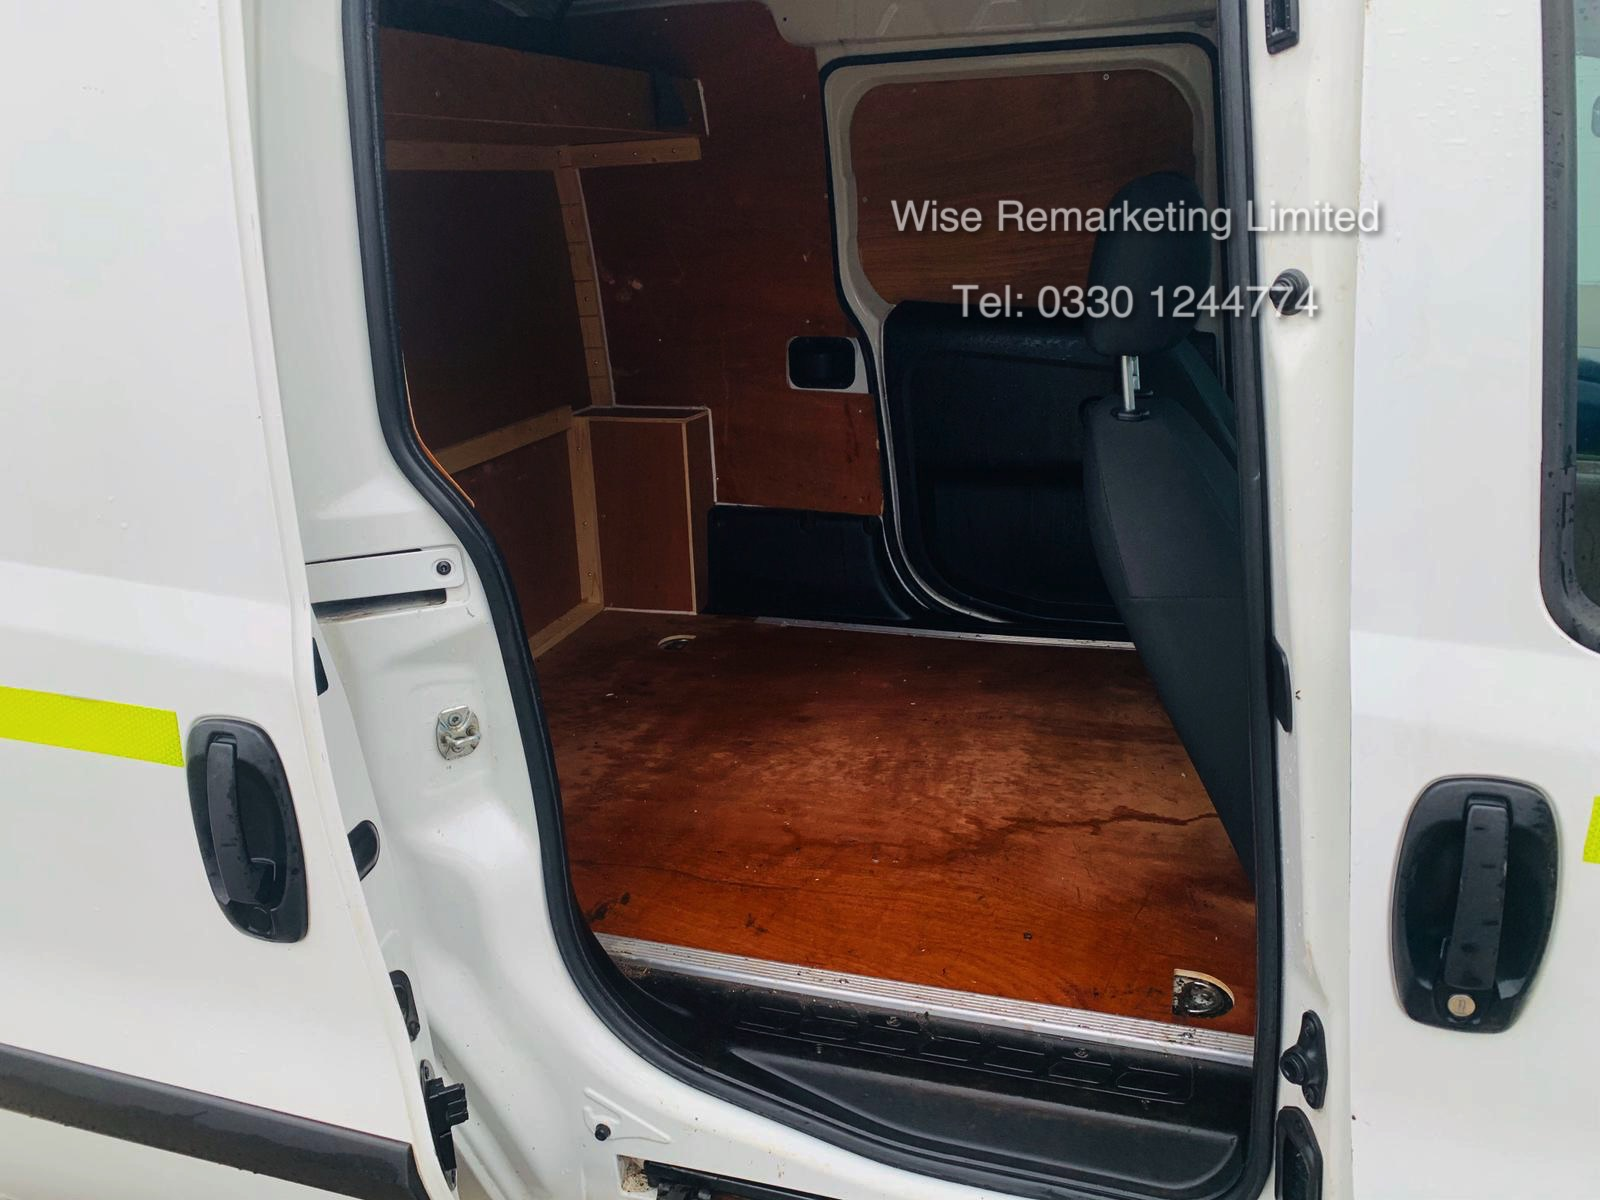 Vauxhall Combo 2300 1.6 CDTI Long - 2016 Model - 1 Keeper From New - Twin Doors - Ply Lined - Image 9 of 21